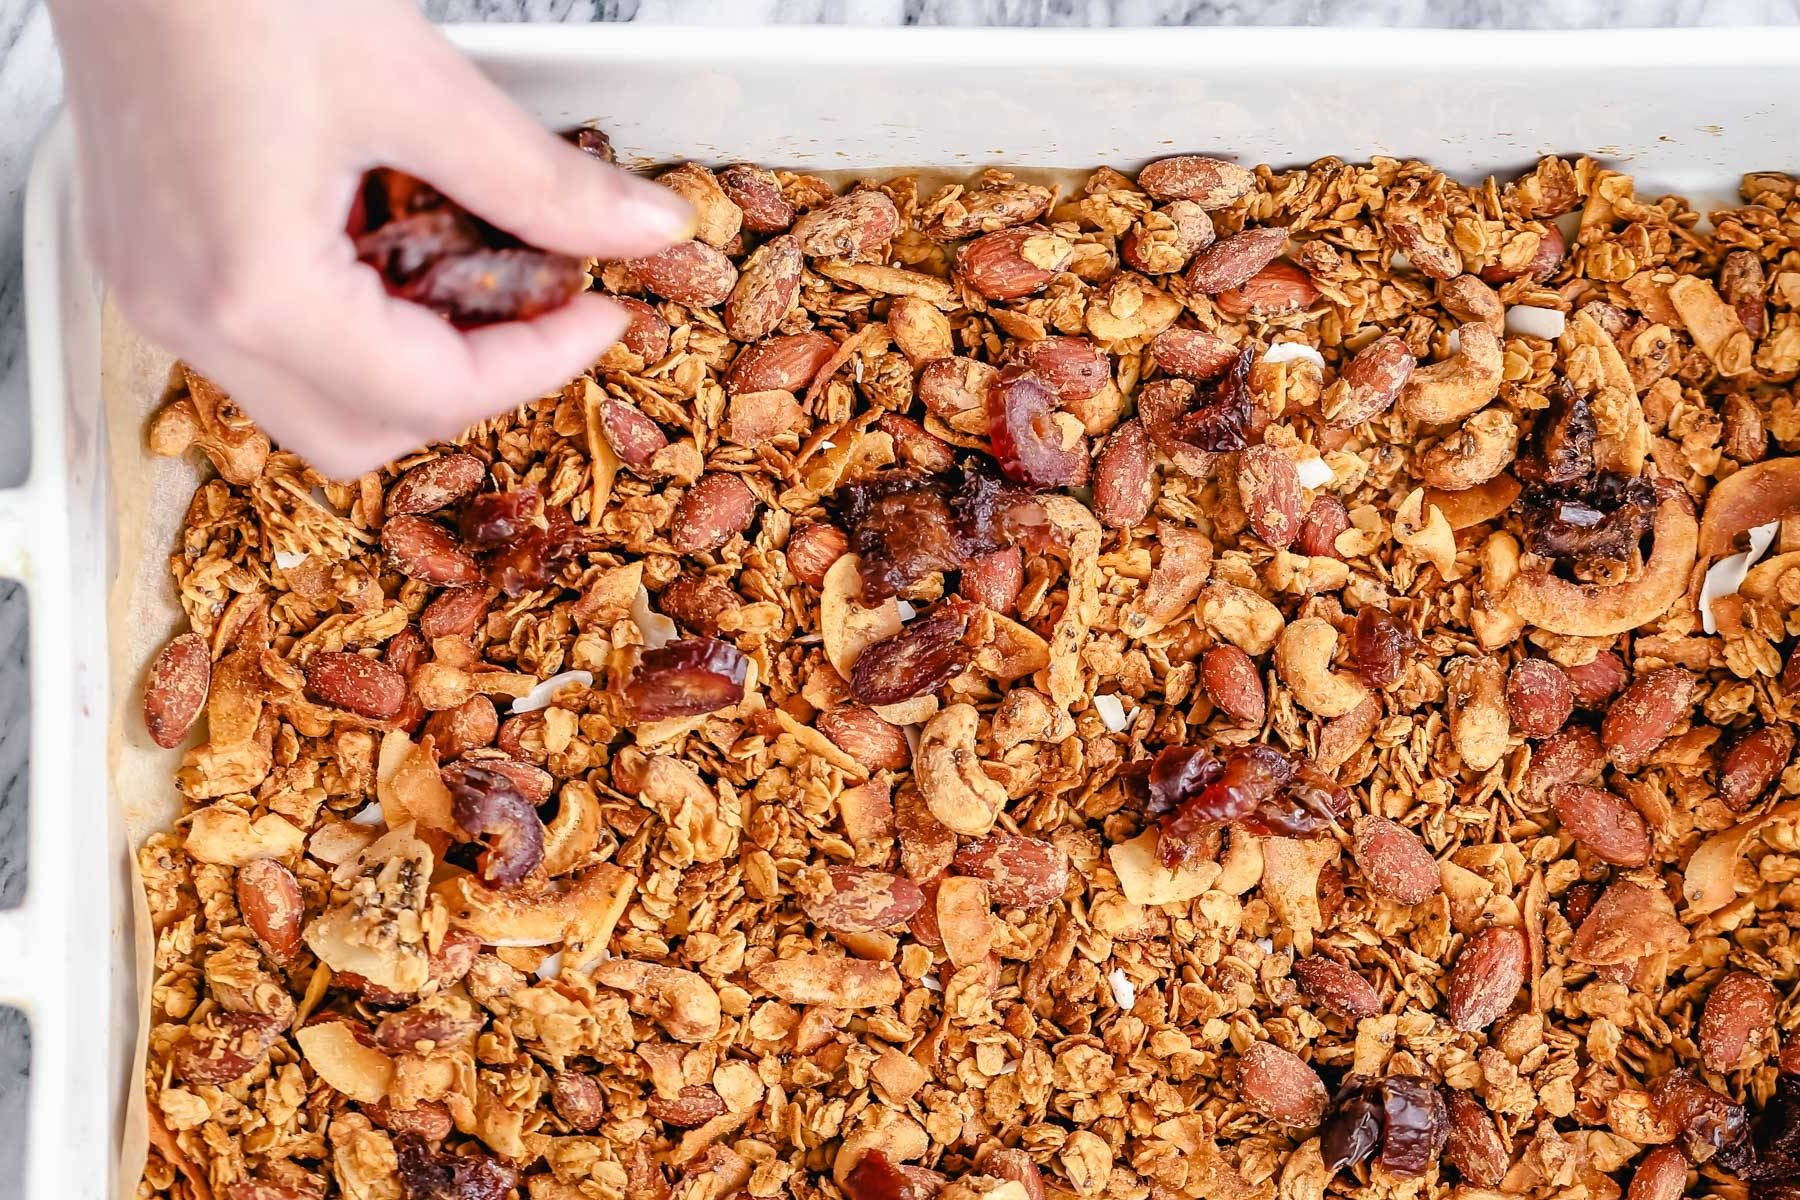 baked vegan granola being spread out in a casserole dish